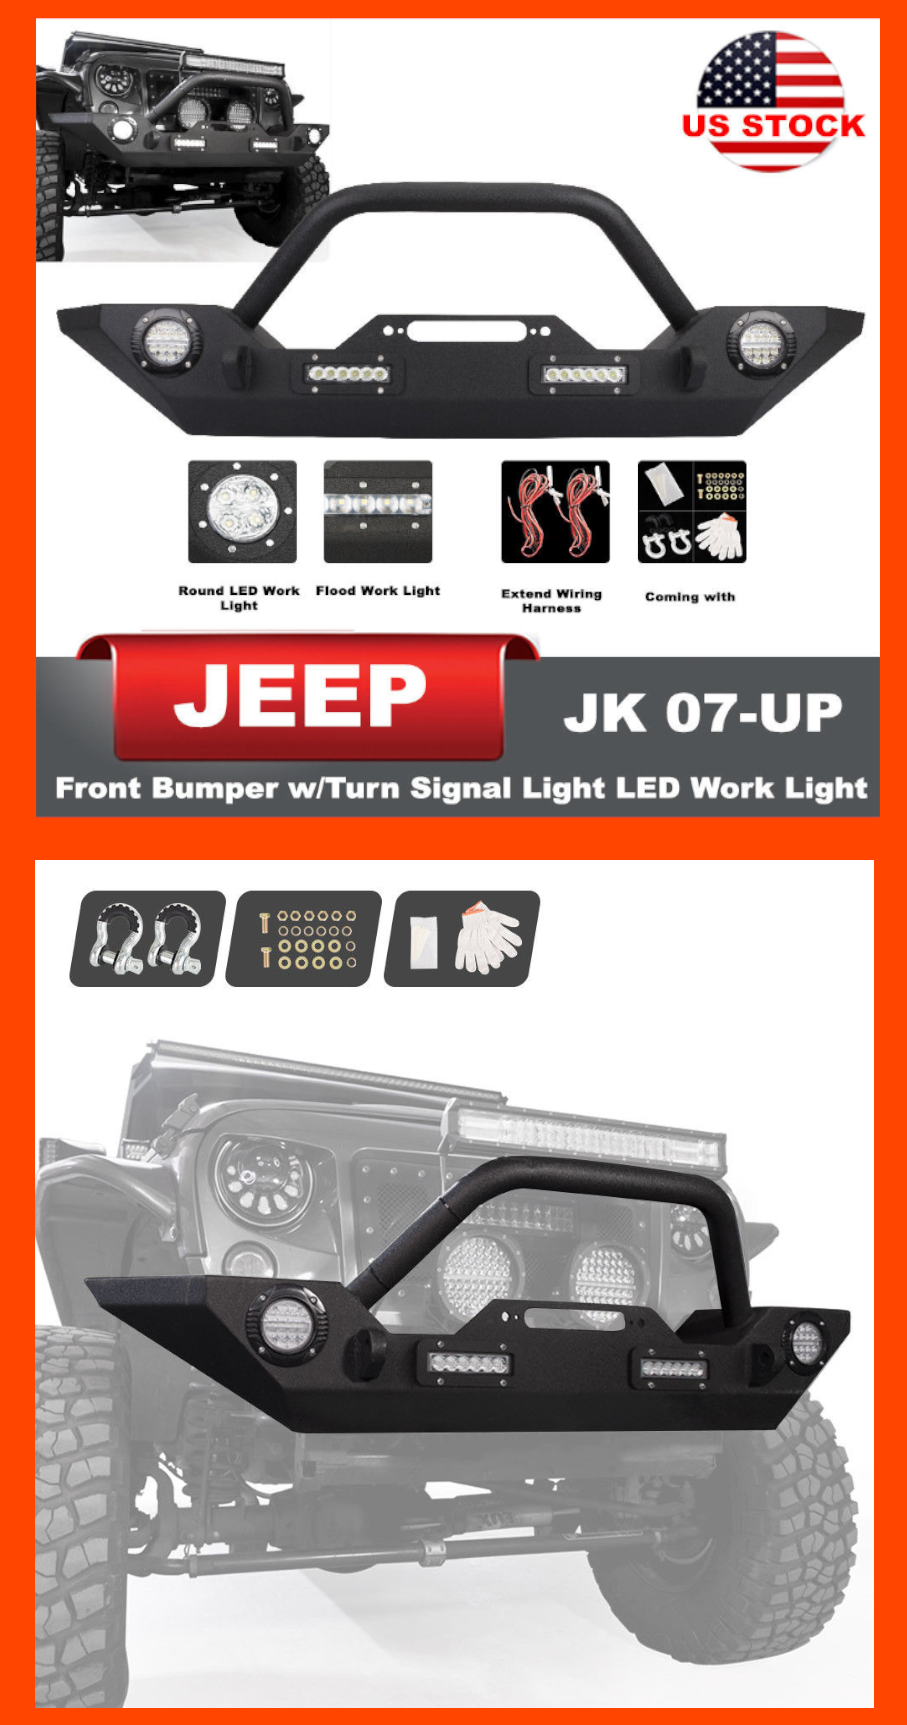 front bumper built in winch plate turn signal lights for jeep wrangler jk us 169 90 jeep jeeplife jk wrangler rubicon bumper 4wd offroad suv  [ 907 x 1725 Pixel ]